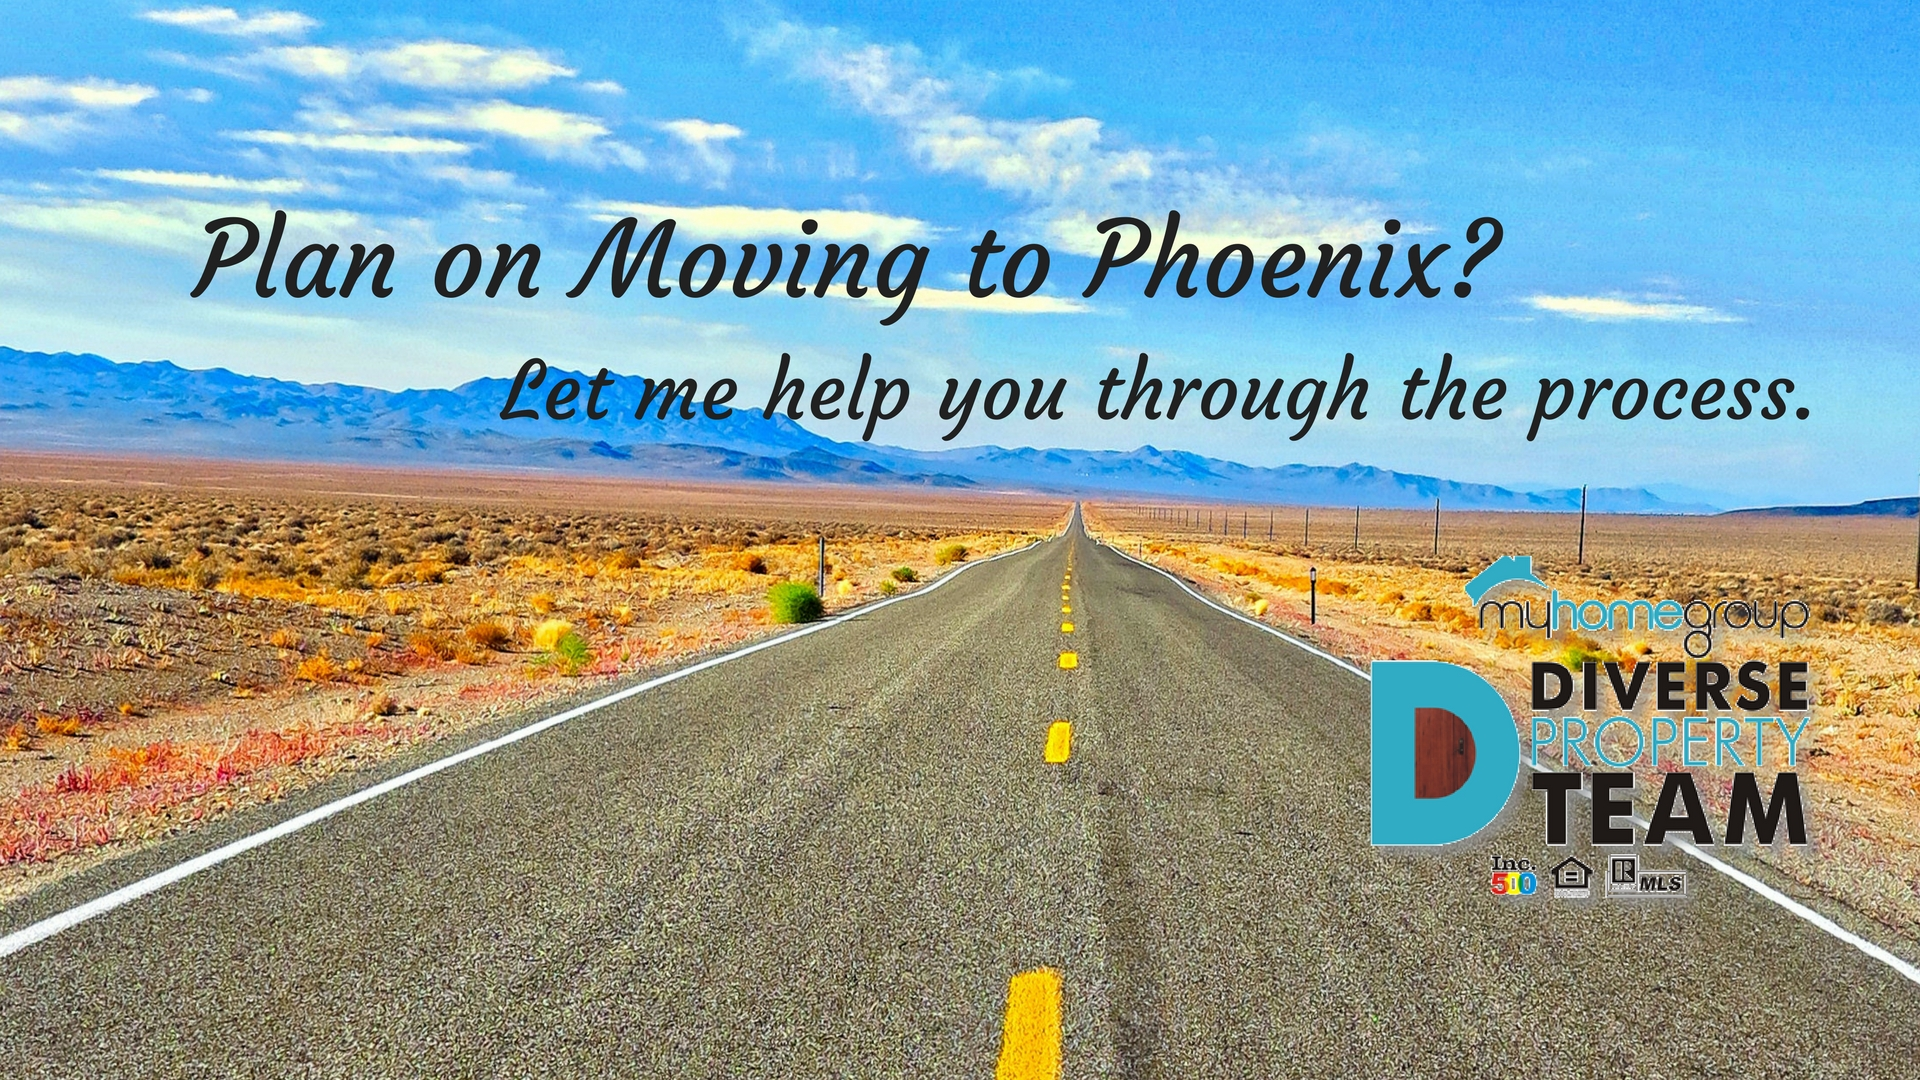 Plan on Moving to <a href='https://denise.searchforhomesinarizona.com/index.php?types[]=1&types[]=2&areas[]=city:Phoenix&beds=0&baths=0&min=0&max=100000000&map=0&quick=1&submit=Search' title='Search Properties in Phoenix'>Phoenix</a>?